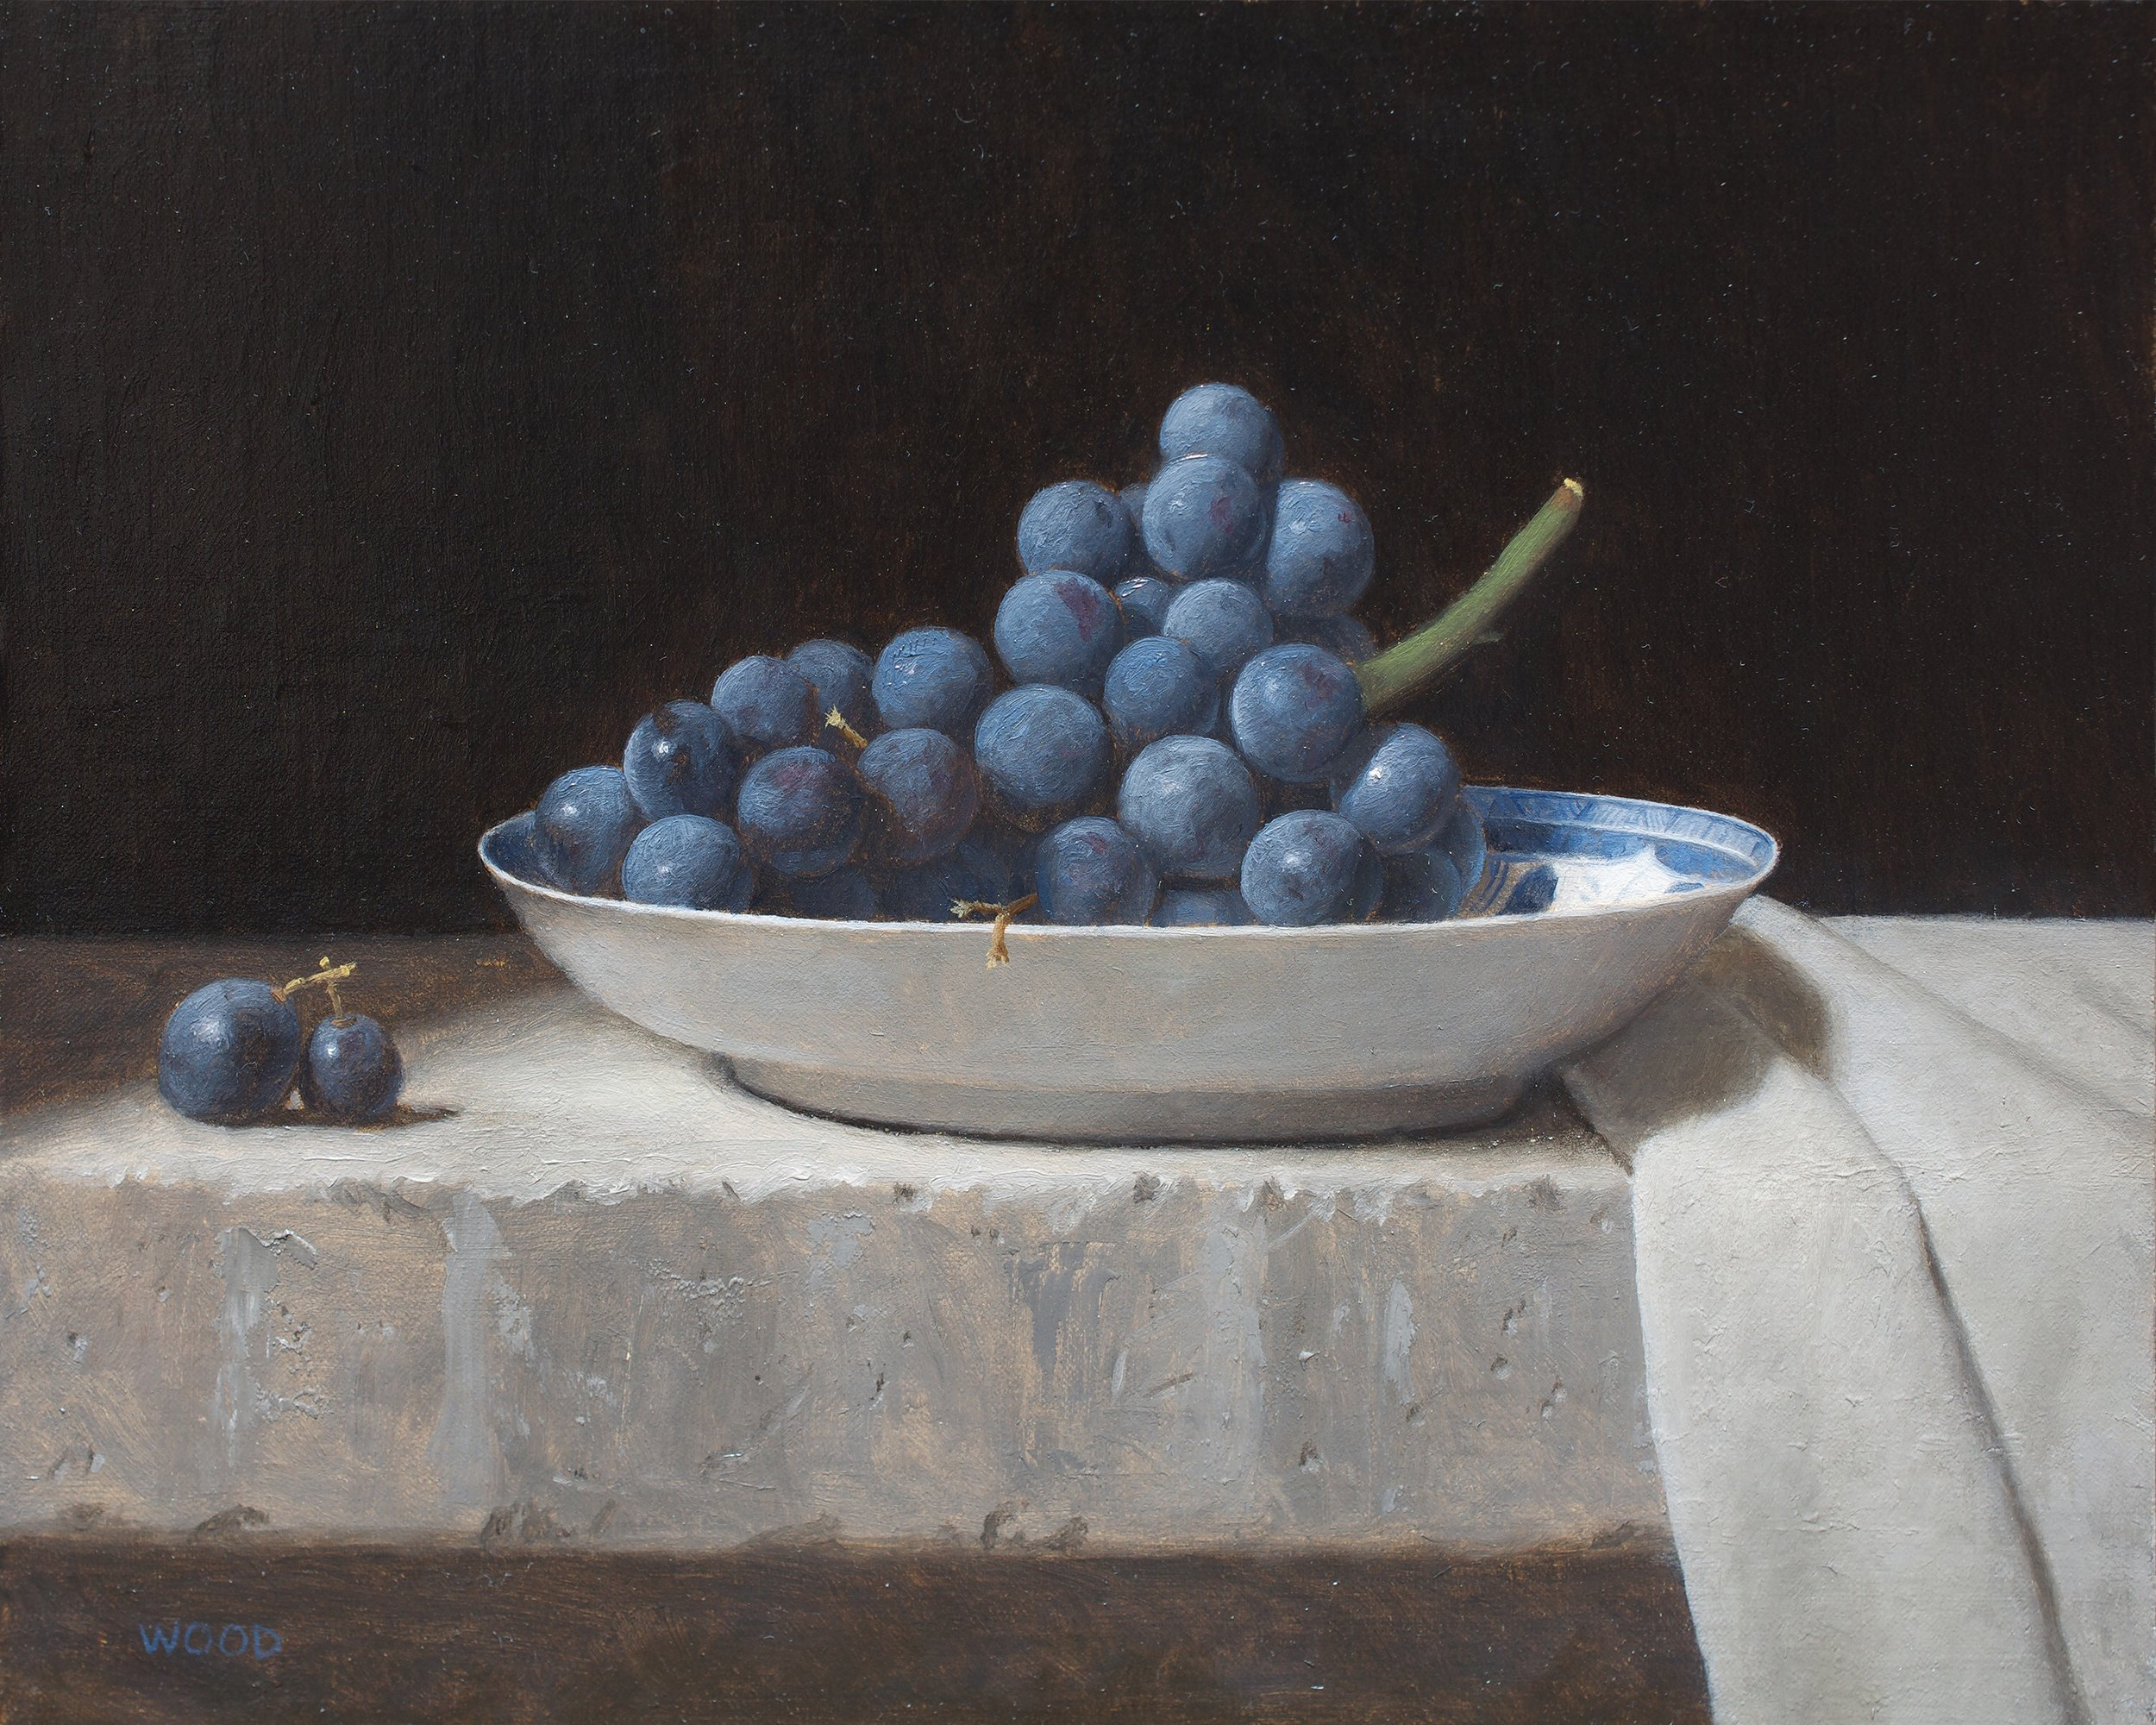 Blueberries, Justin Wood